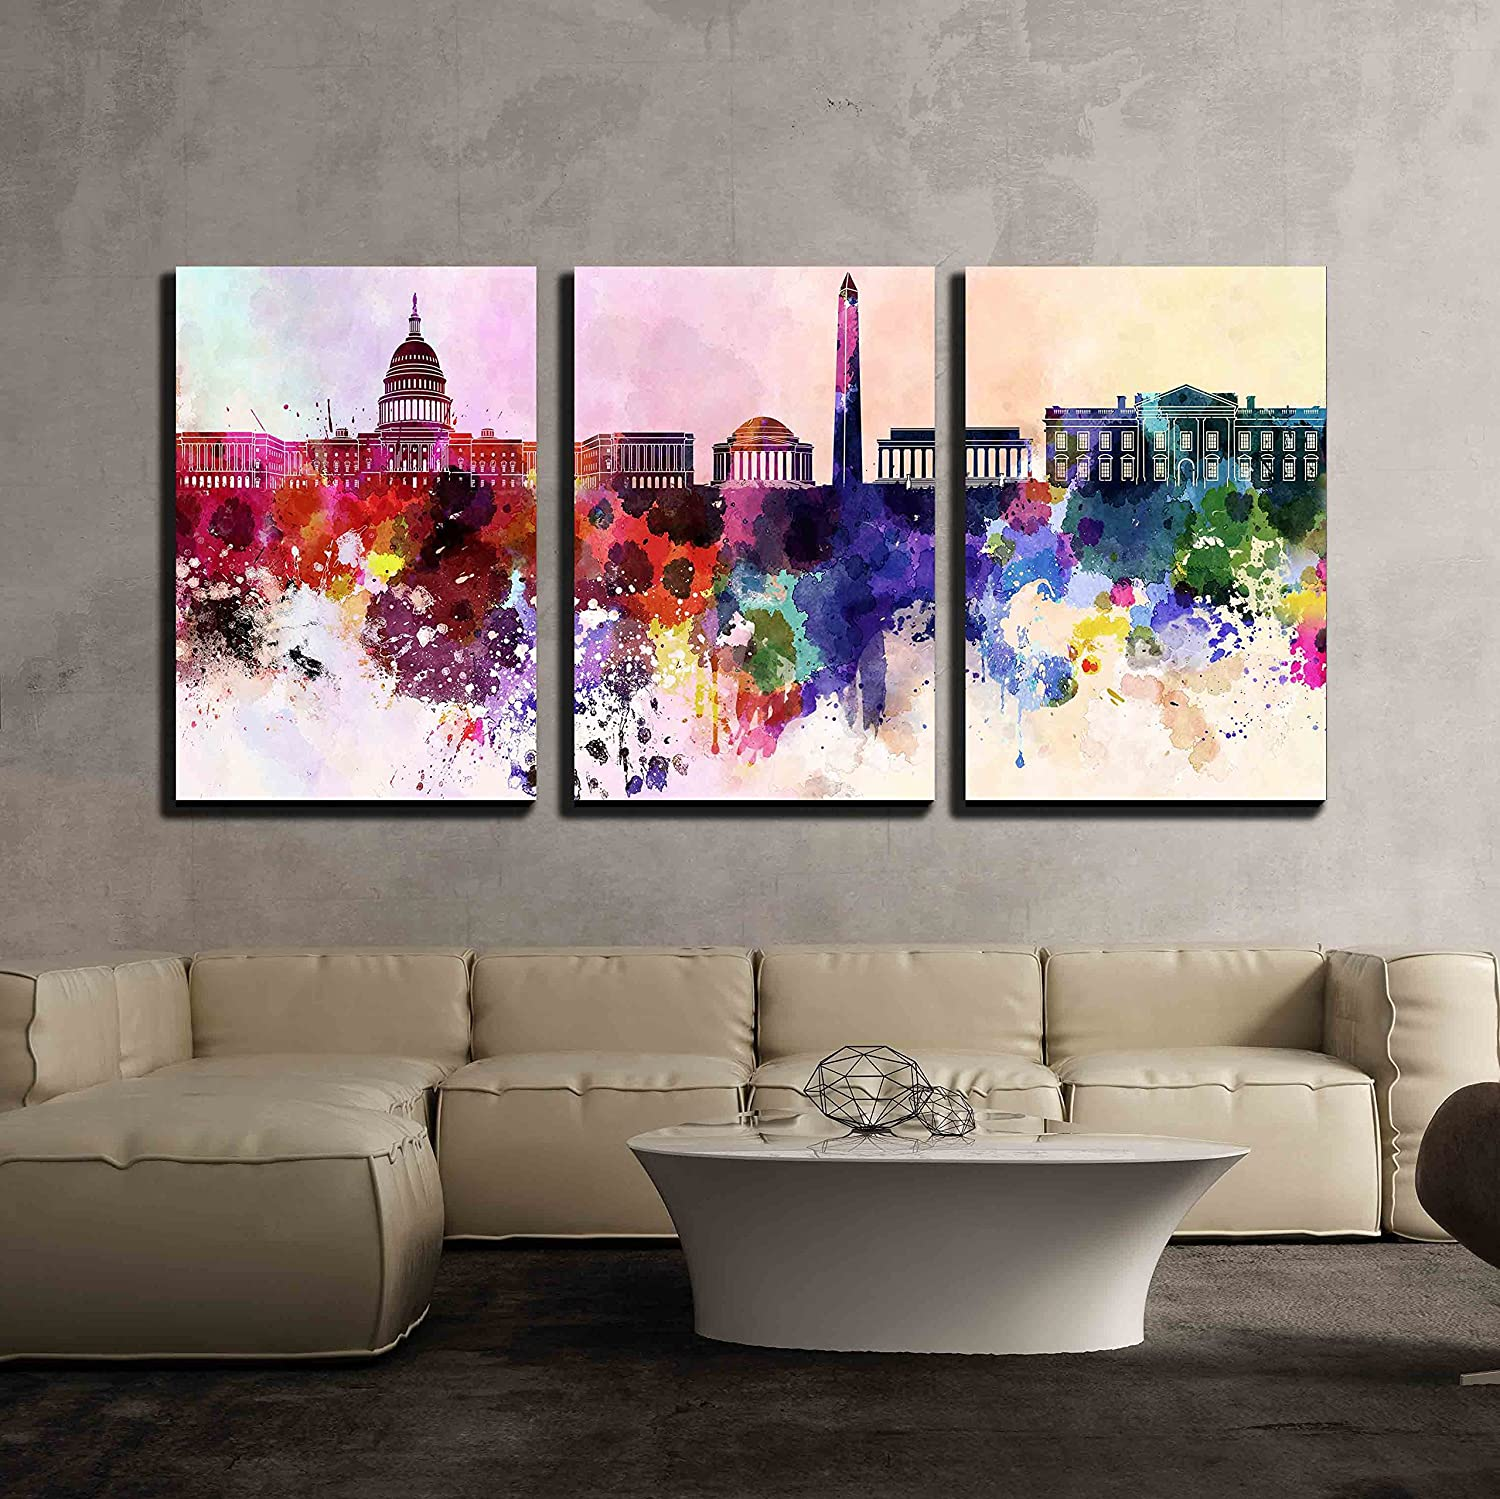 Wall26 - Washington DC in Watercolor - Canvas Art Wall Decor - 16 x24 x3 Panels